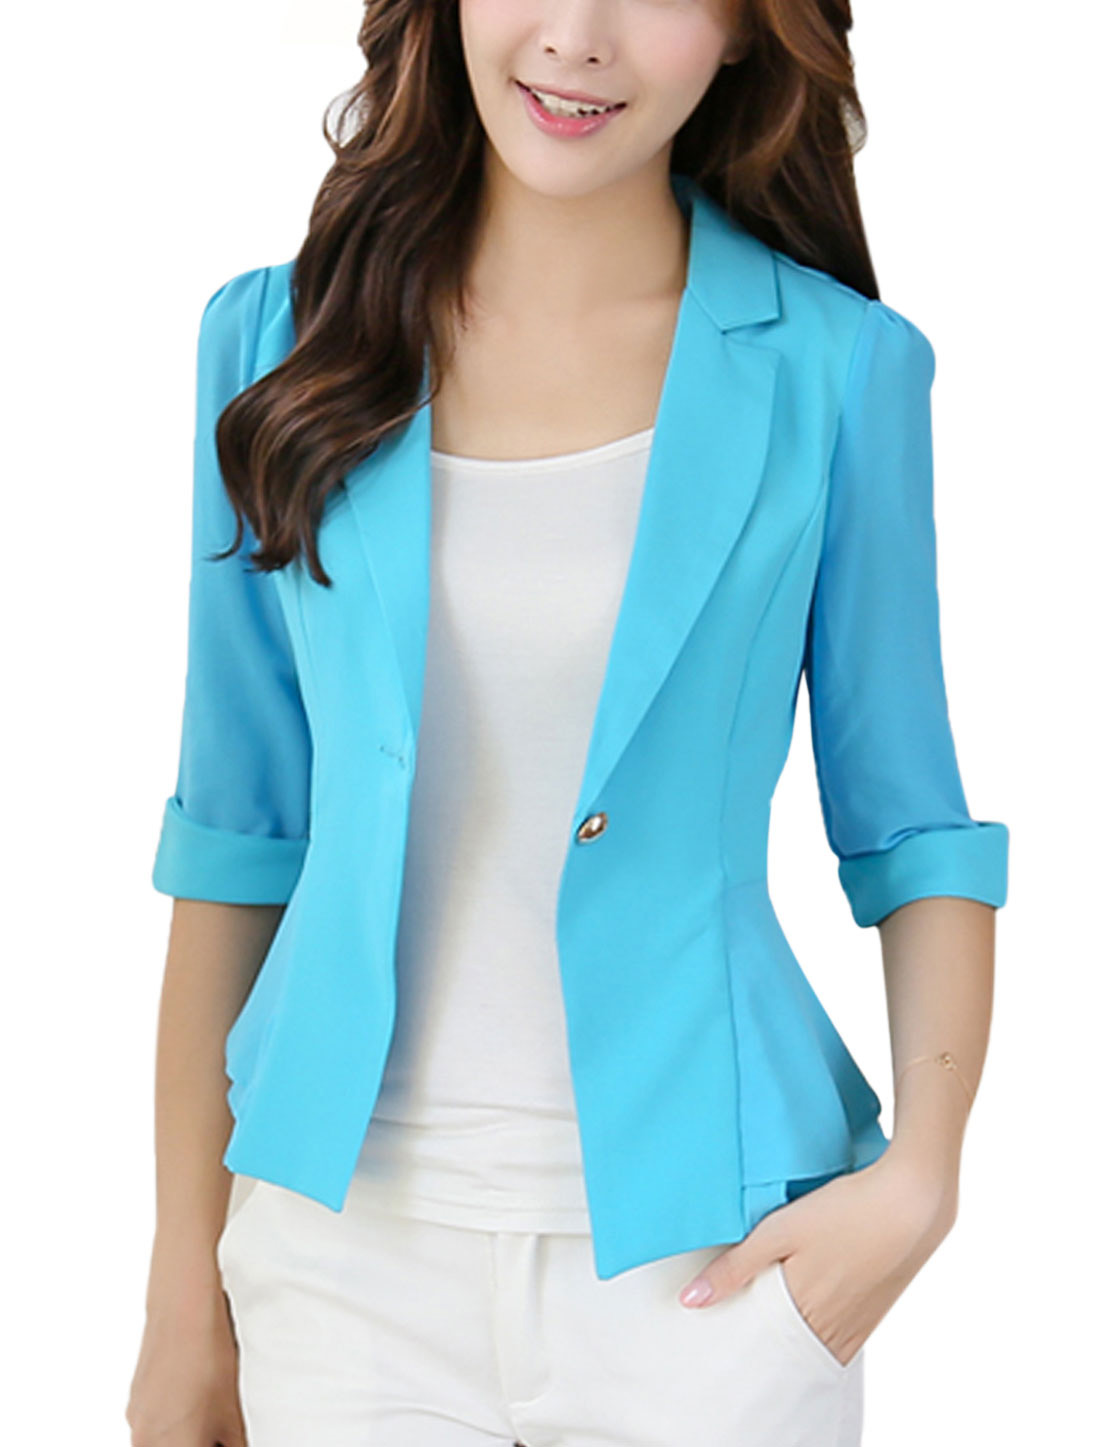 Slim Fit Casual One Button Closed Blazer Jacket for Lady Light Blue M